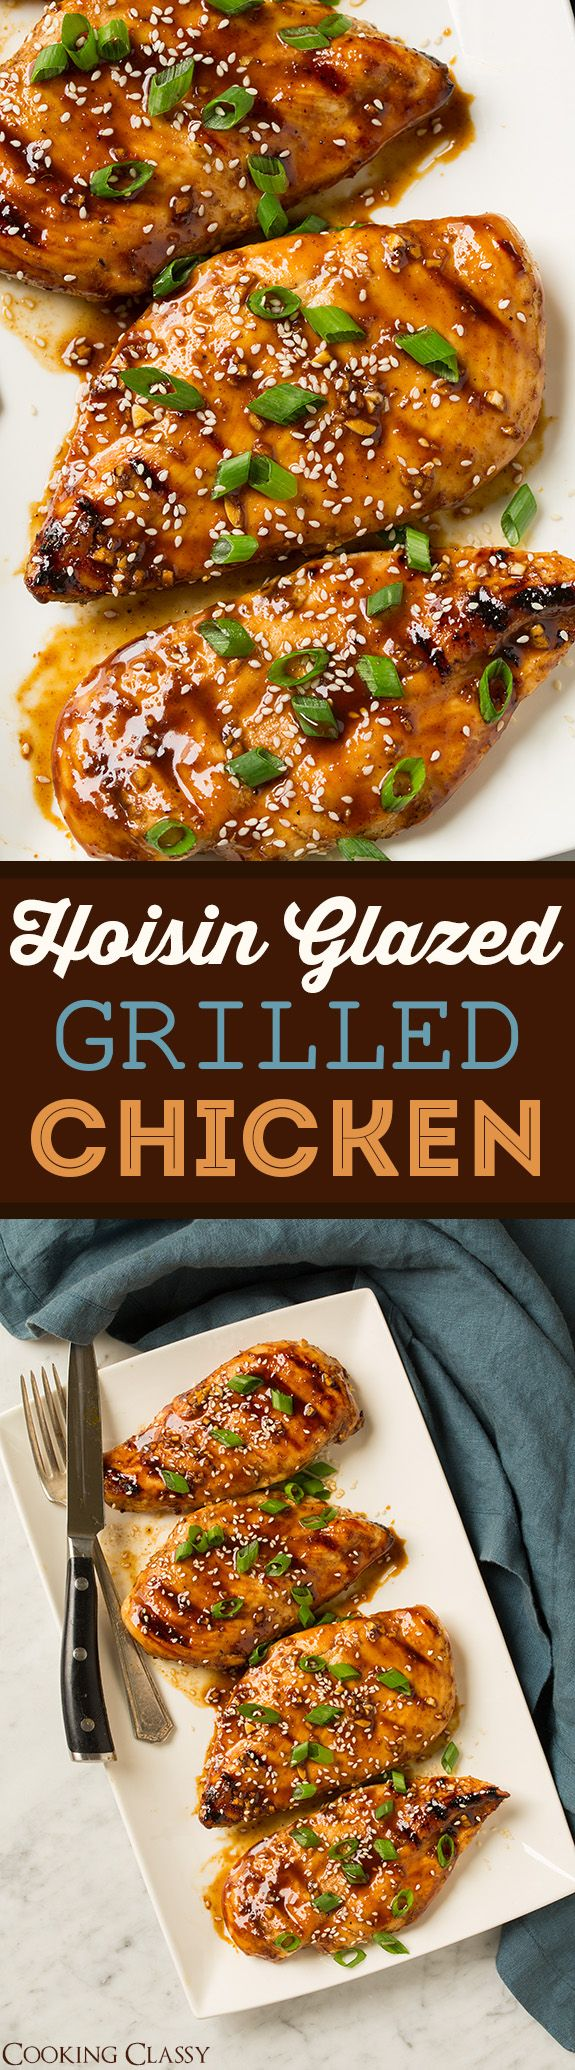 Hoisin Glazed Grilled Chicken - quick, easy, flavorful Asian Chicken! Perfect for weeknight summer cookouts!